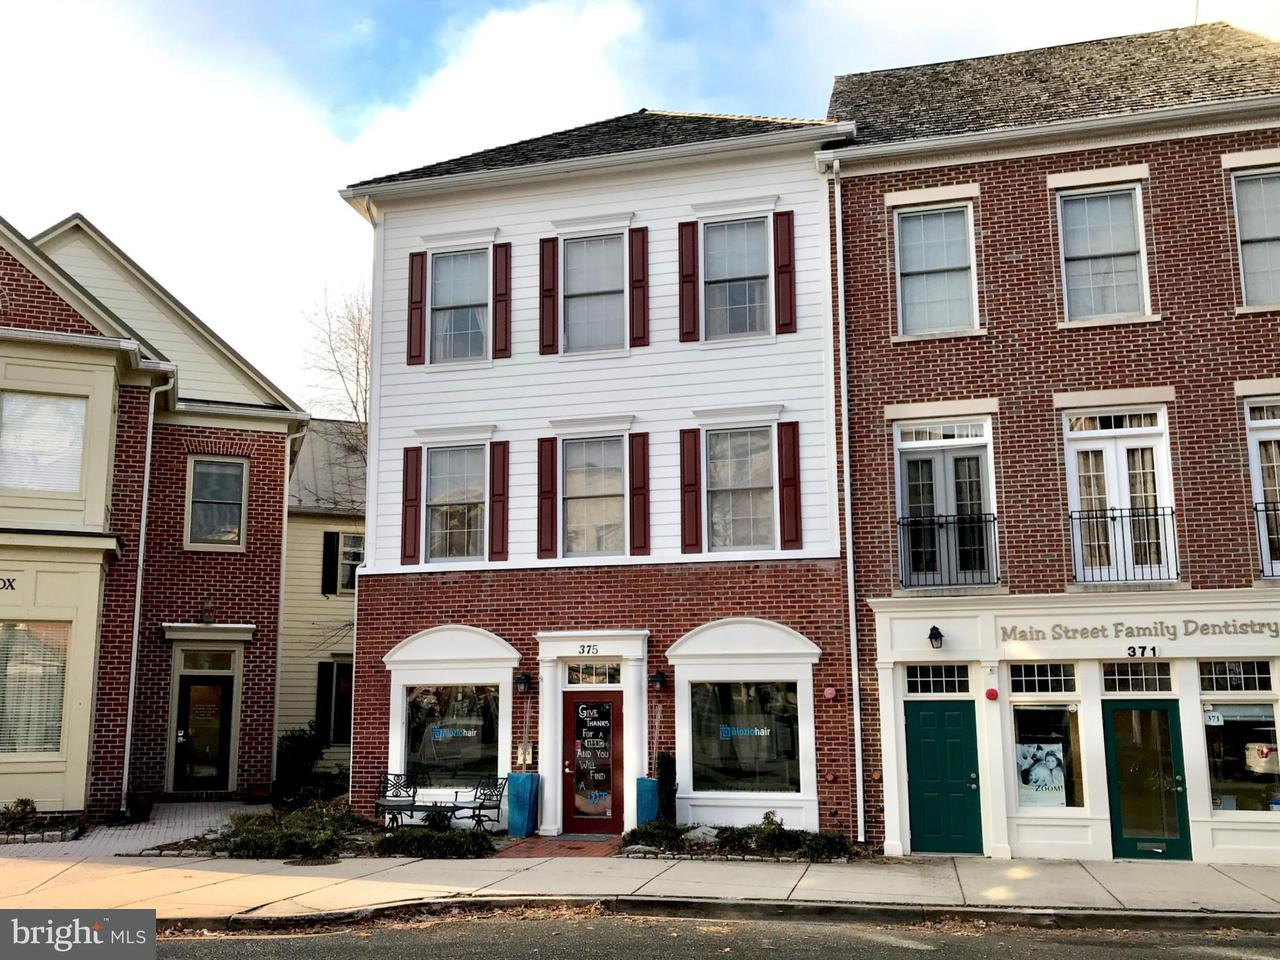 Commercial for Sale at 375 Main Street 375 Main Street Gaithersburg, Maryland 20878 United States